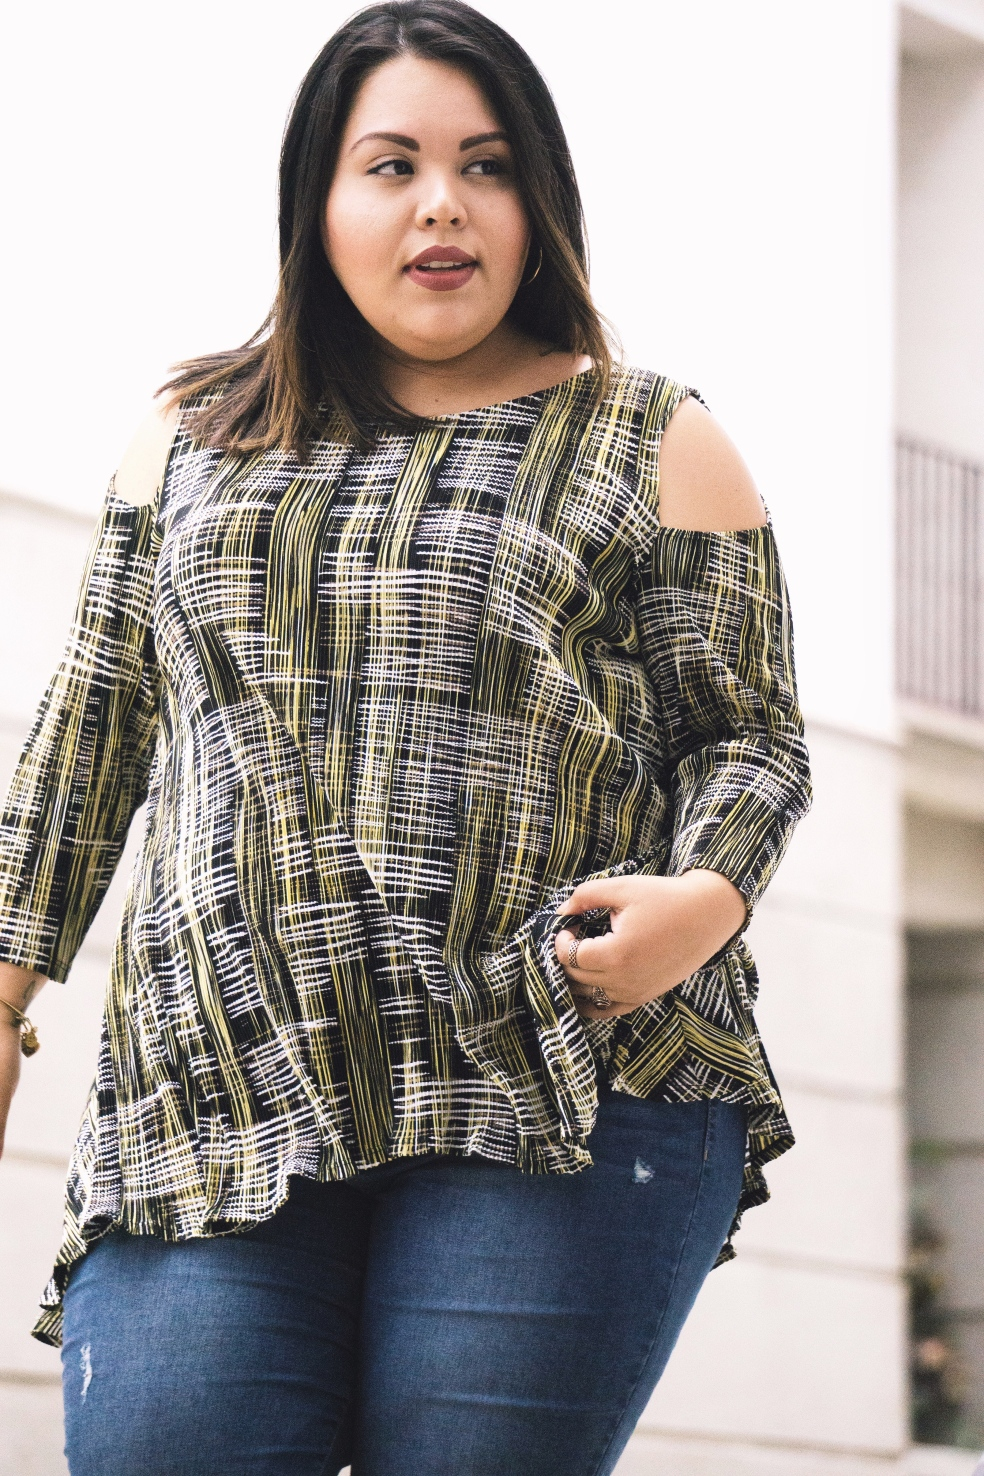 How to Style: Appear Long and Lean as a Plus Size Petite Girl